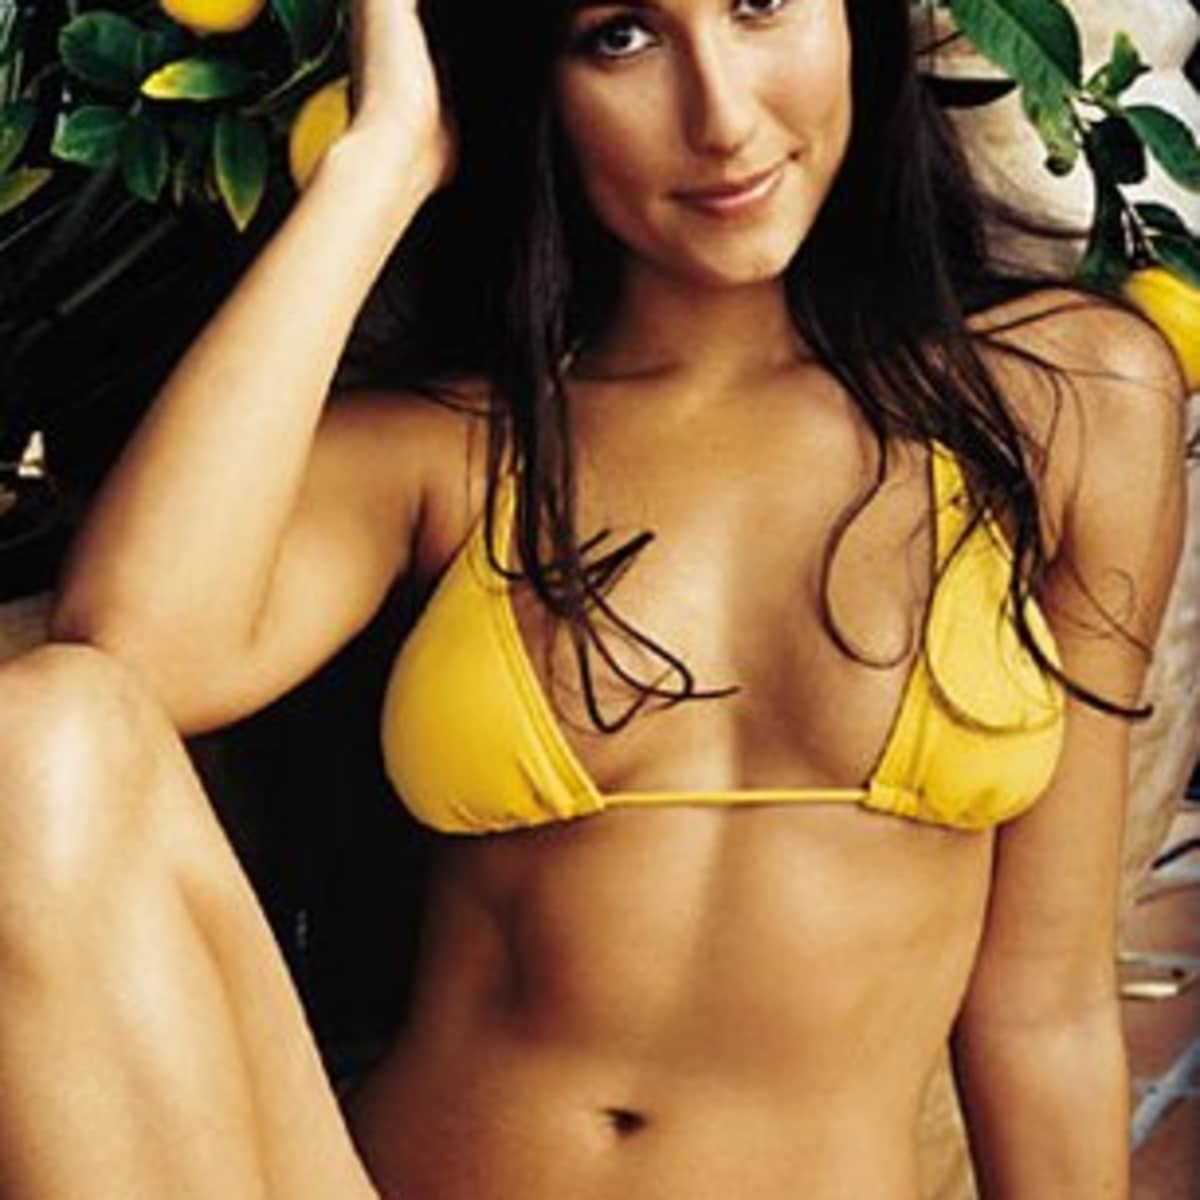 Hottest unknown women in the world